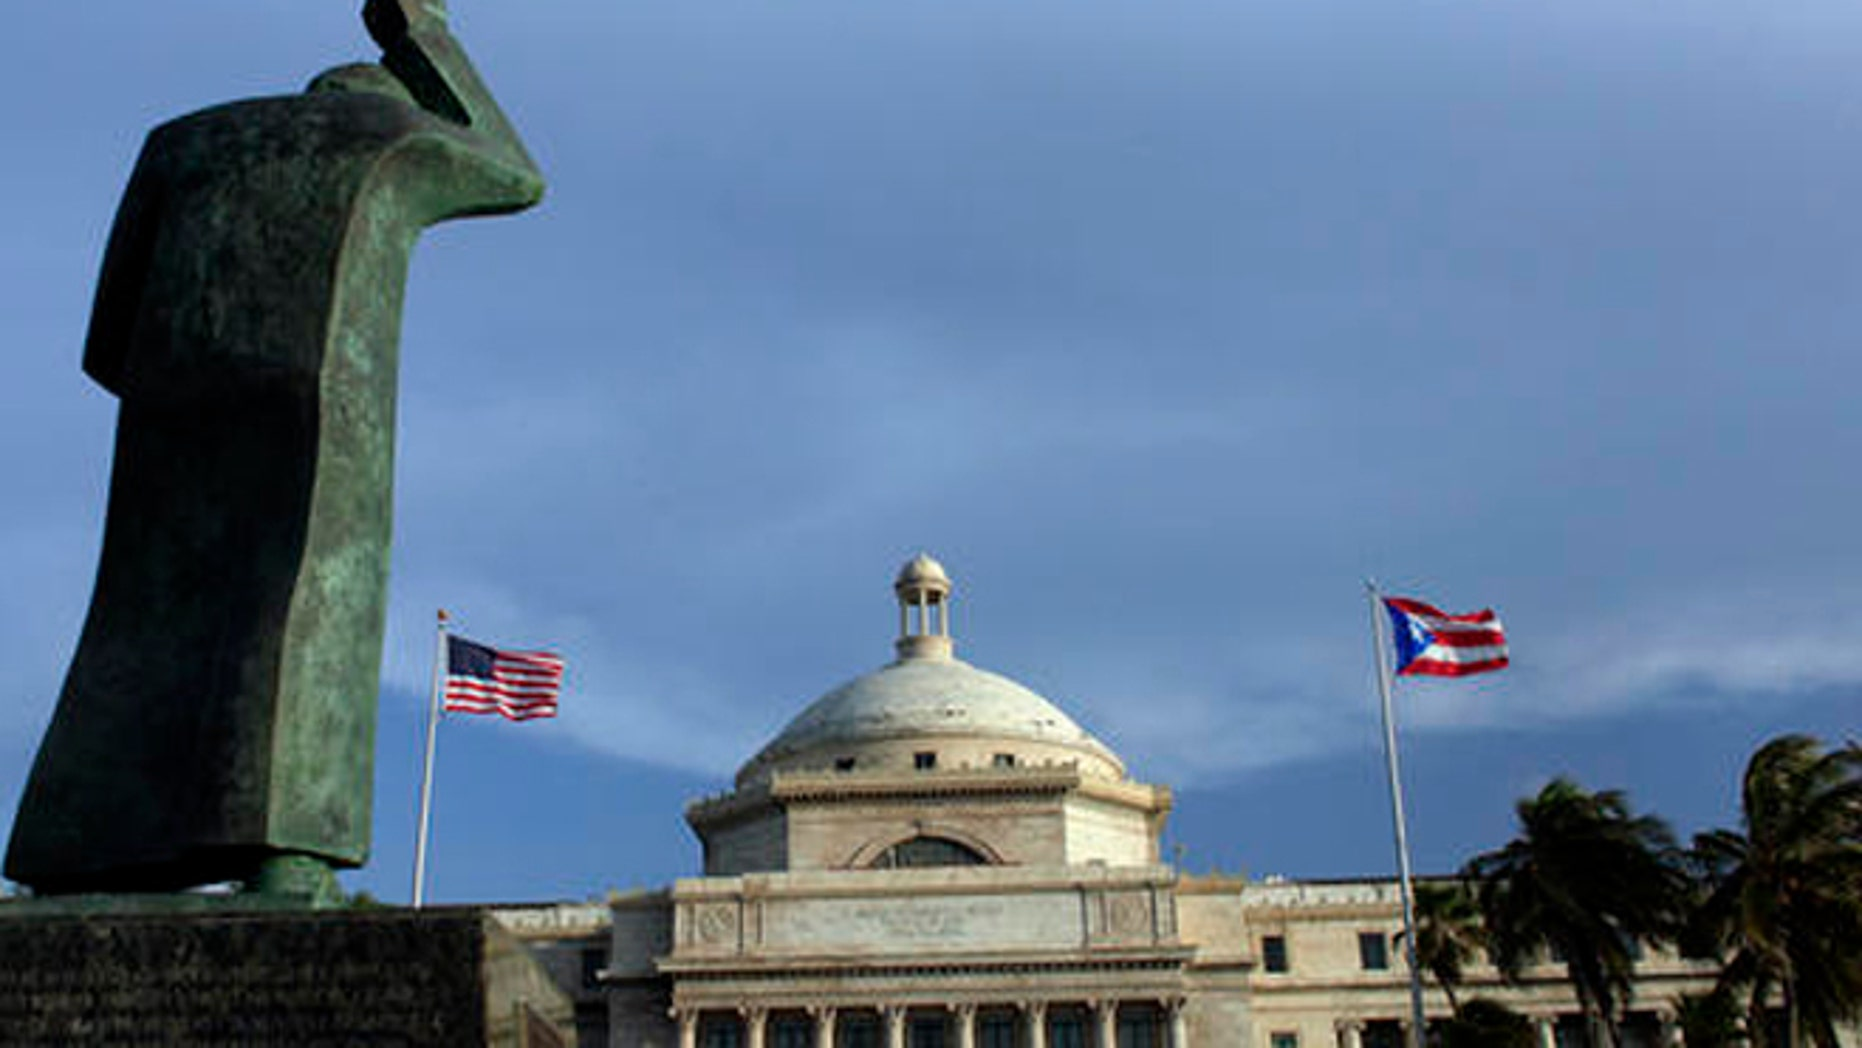 A bronze statue of San Juan Bautista stands in front of Puerto Rico's capitol in San Juan.